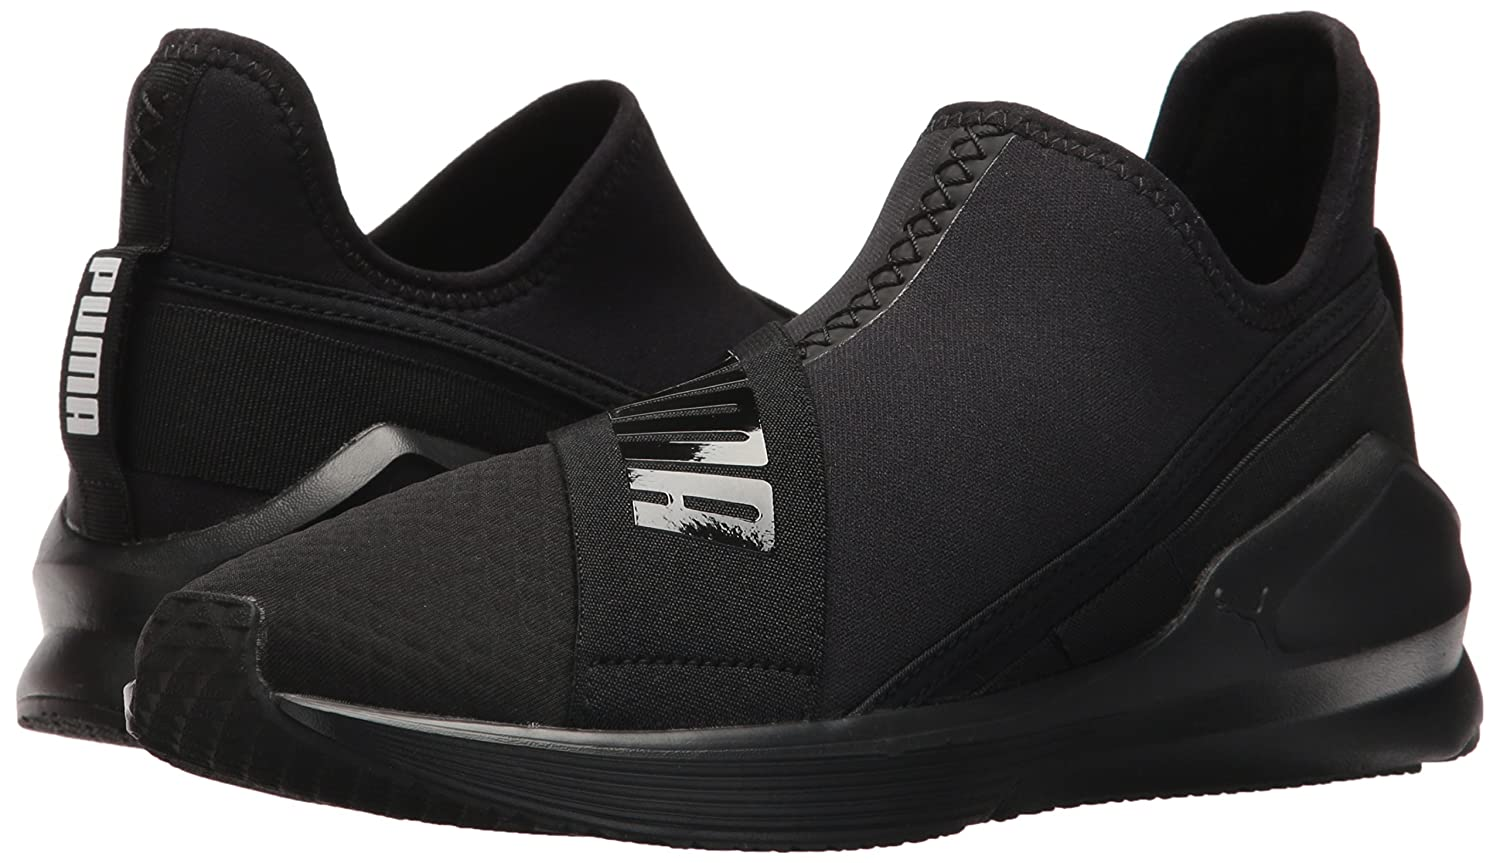 PUMA Women's Fierce Slip-on Wn Sneaker B072MZL8J7 10 B(M) US|Puma Black-puma Black